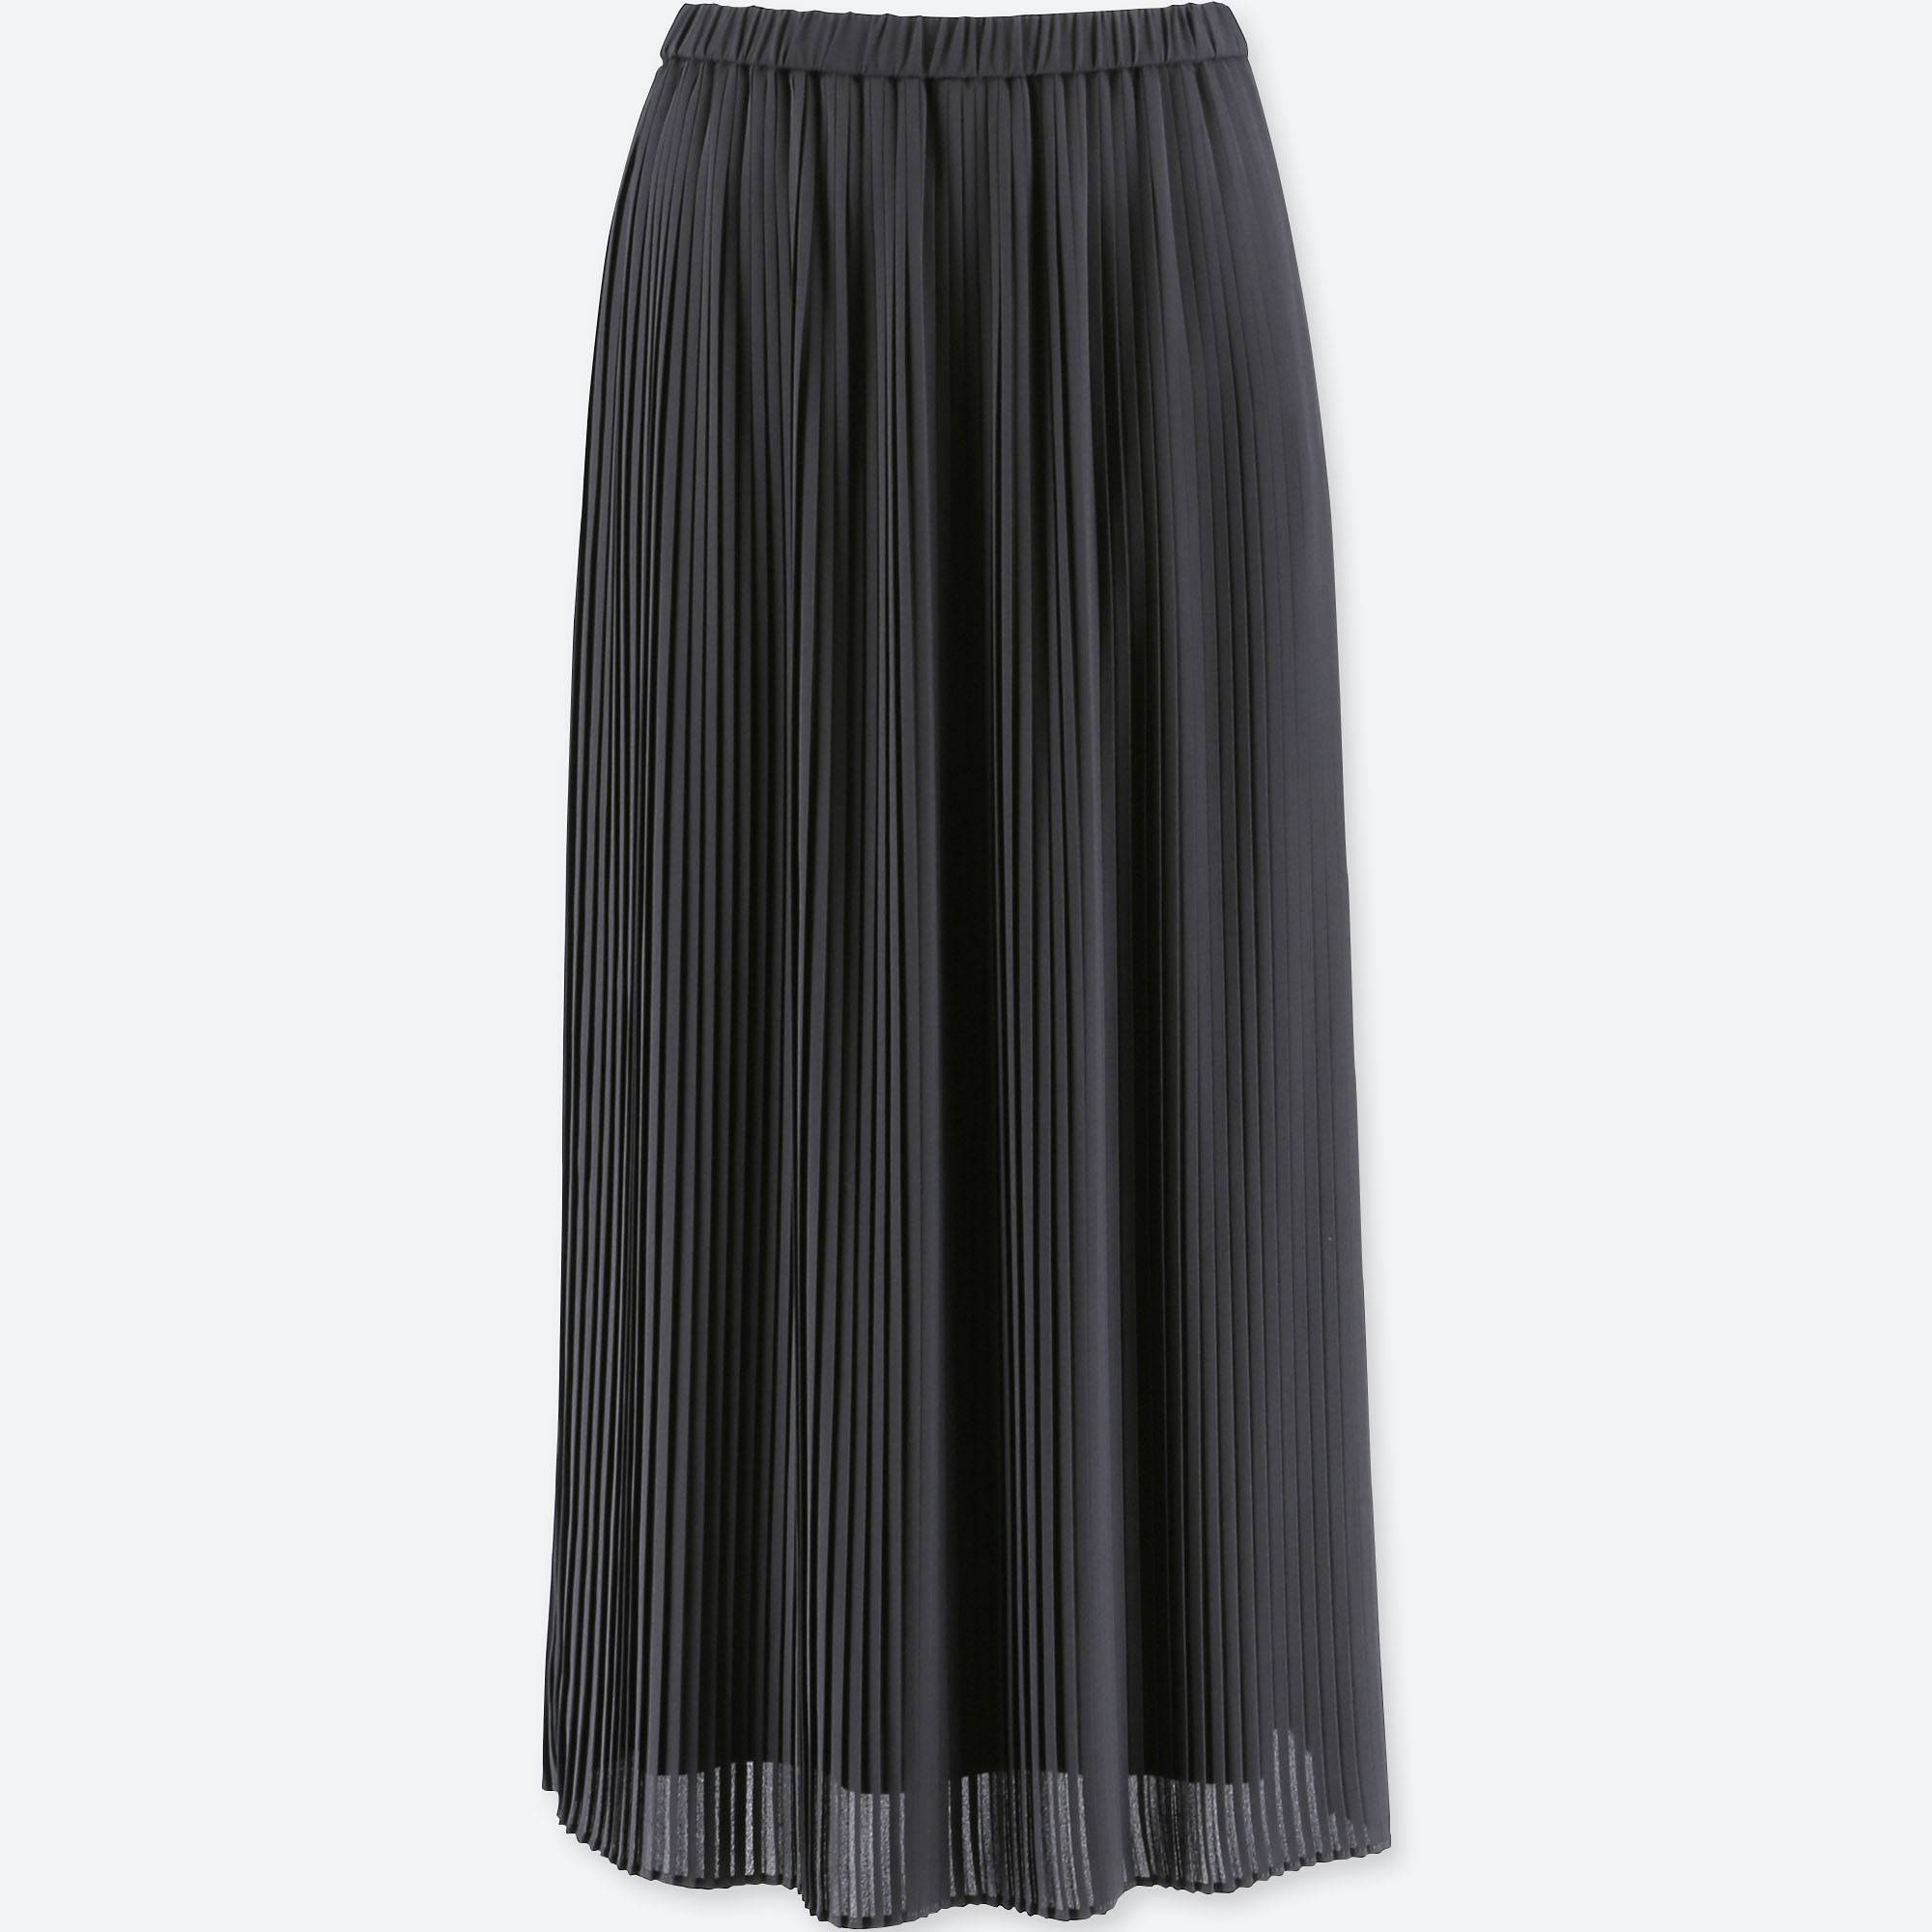 black high waisted pleated skirt image collections